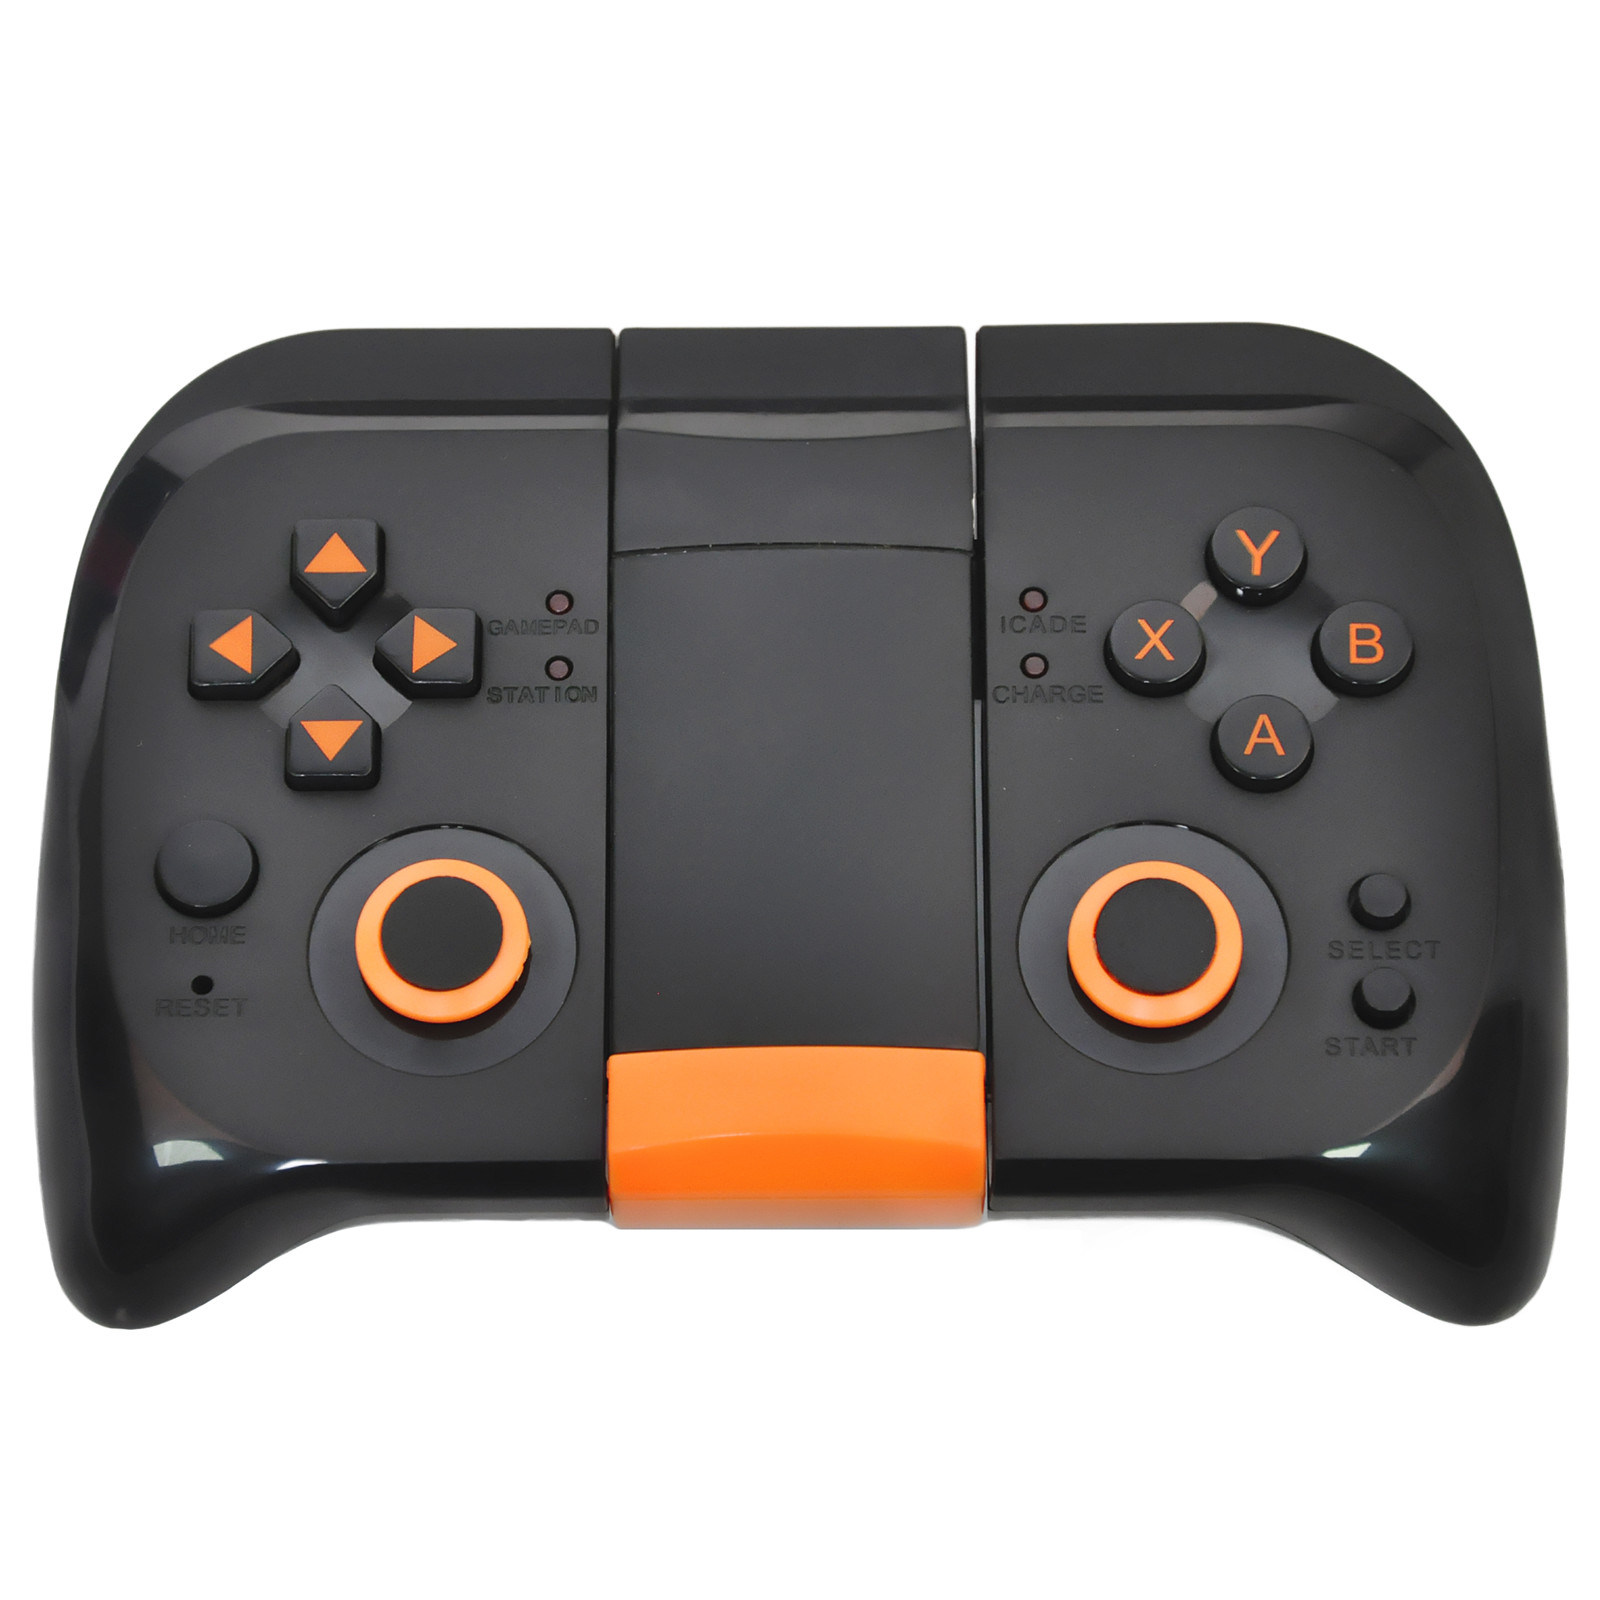 Android Gamepad 2015, Bluetooth Mini Gamepad Controller, Game Accessories